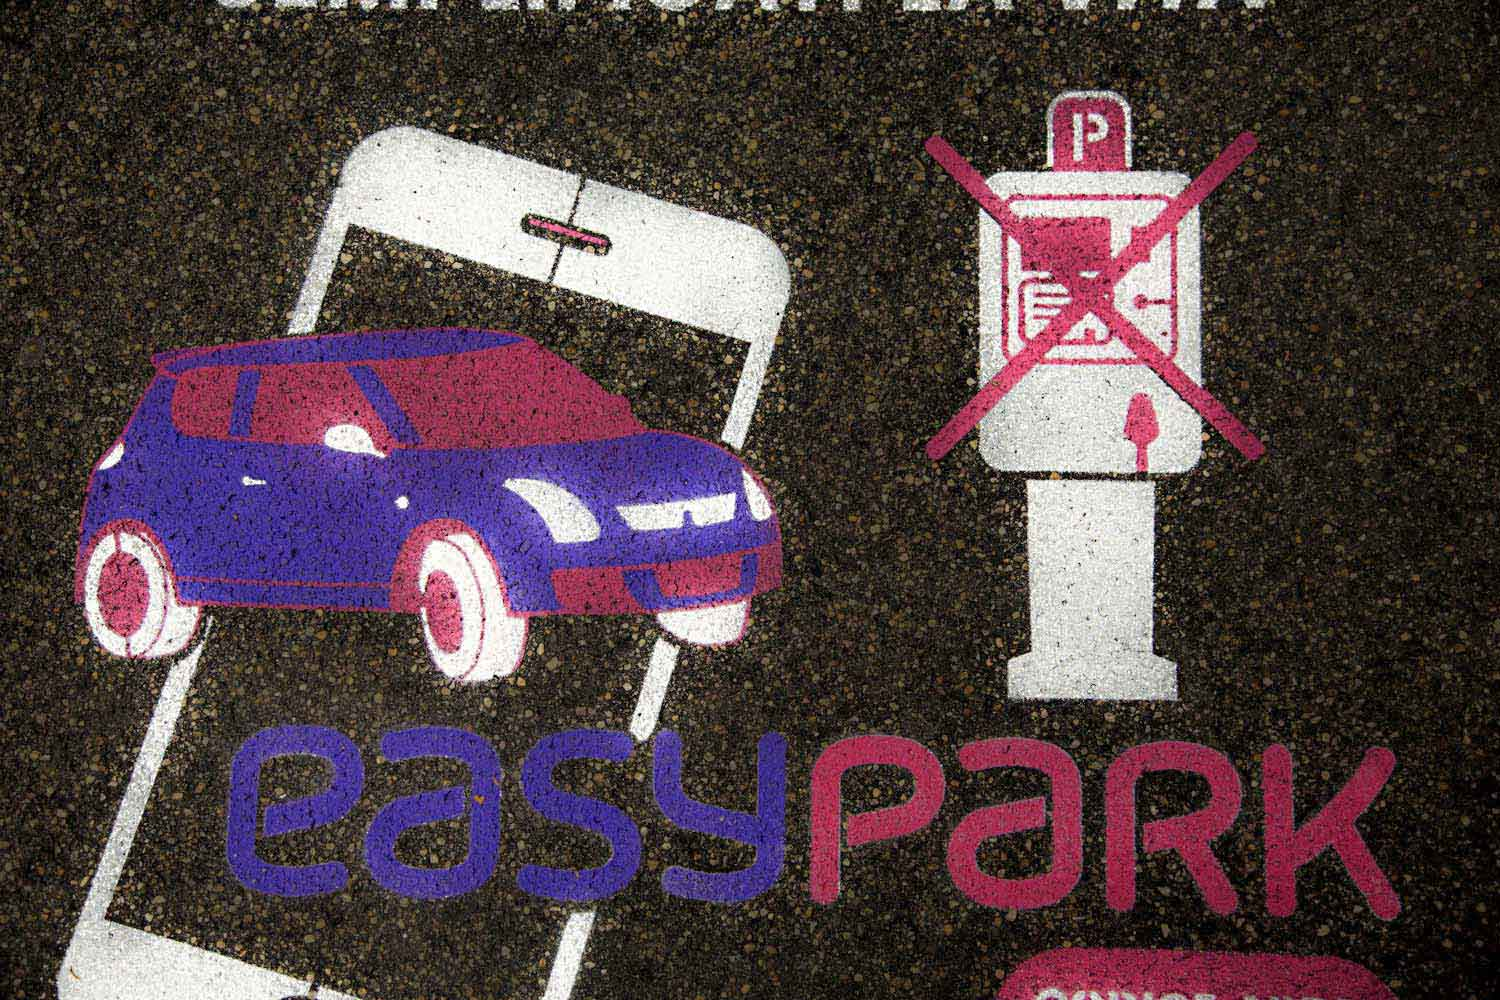 floor advertising easypark